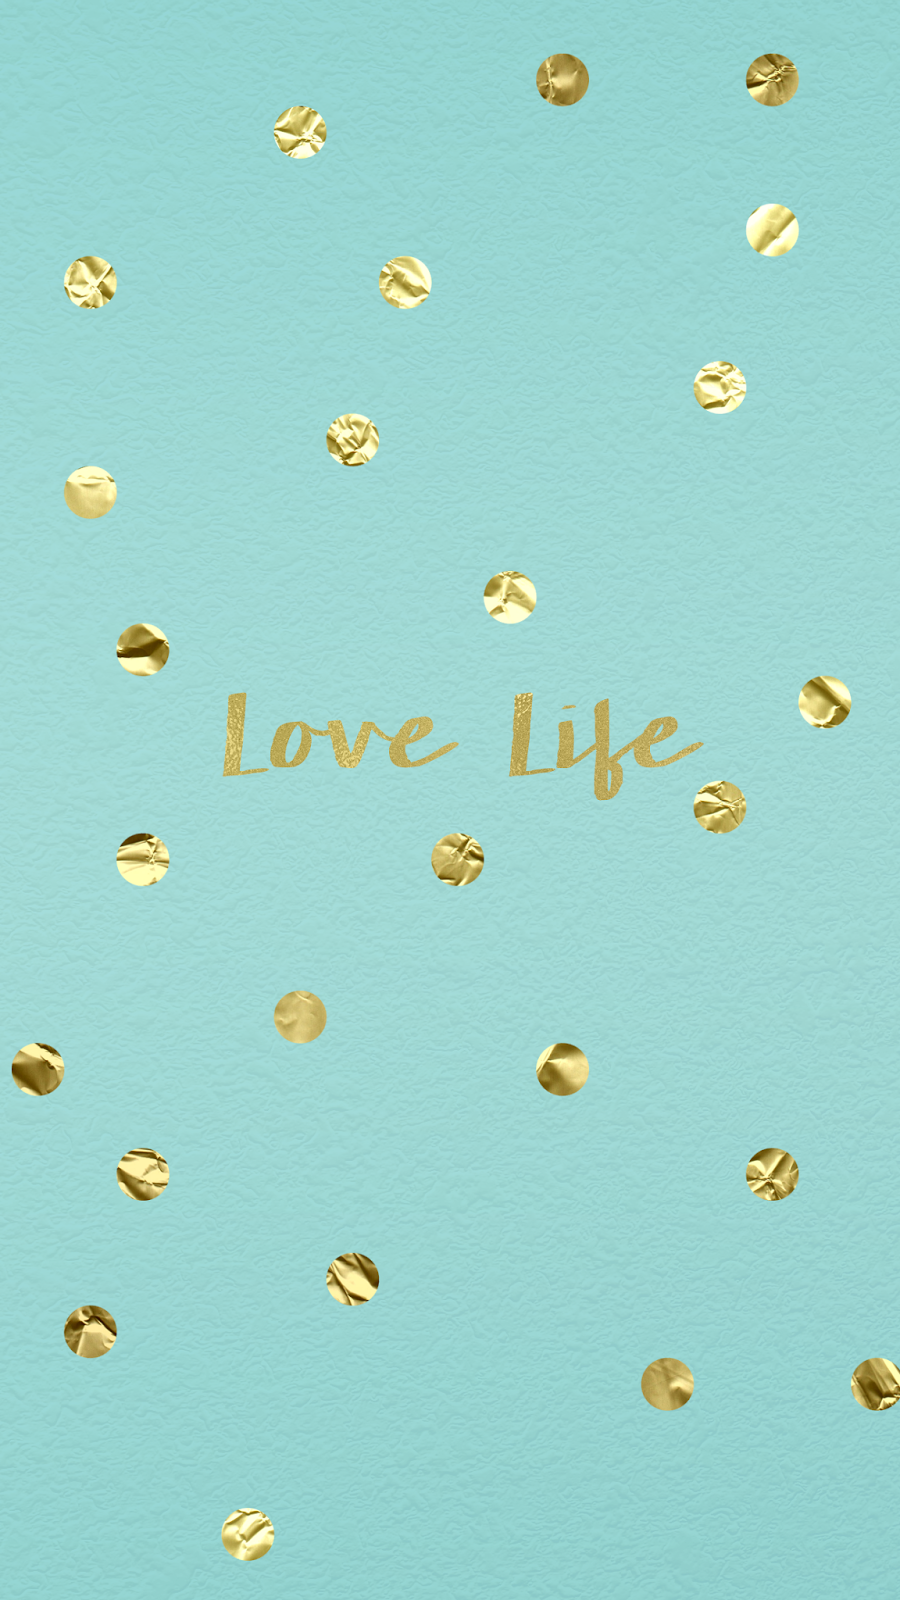 background-hd-iphone-gold-confetti-tiffany-blue-love-life-wallpaper-wp4210513